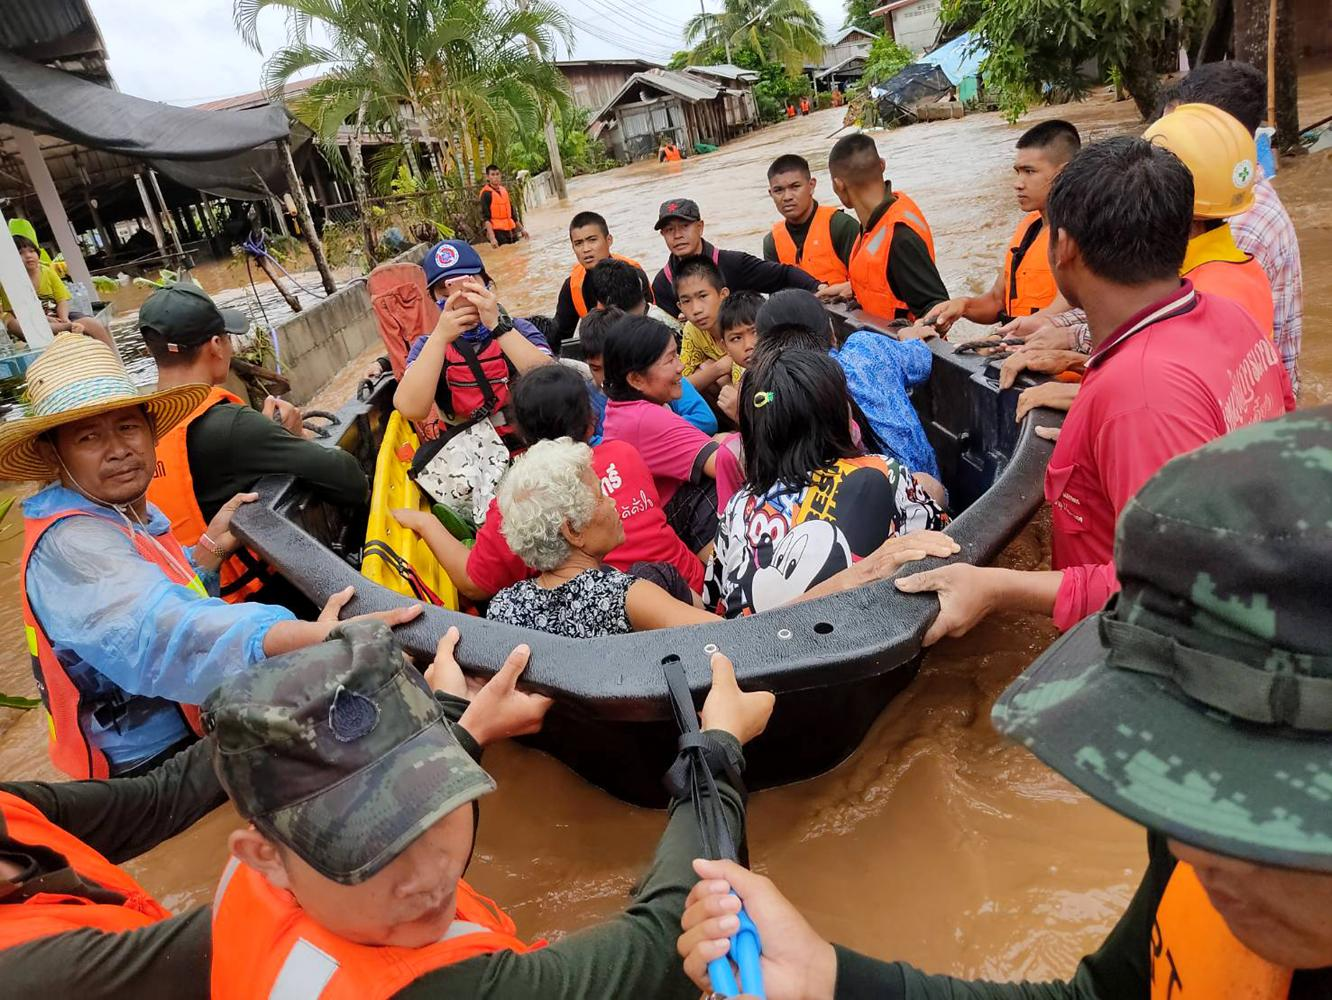 Soldiers evacuate villagers in Muang district of Loei province after run-off water caused by heavy rain engulfed over 1,000 houses in districts including Muang, Chiang Khan, Pak Chom and Na Duang. (Royal Thai Army photo)